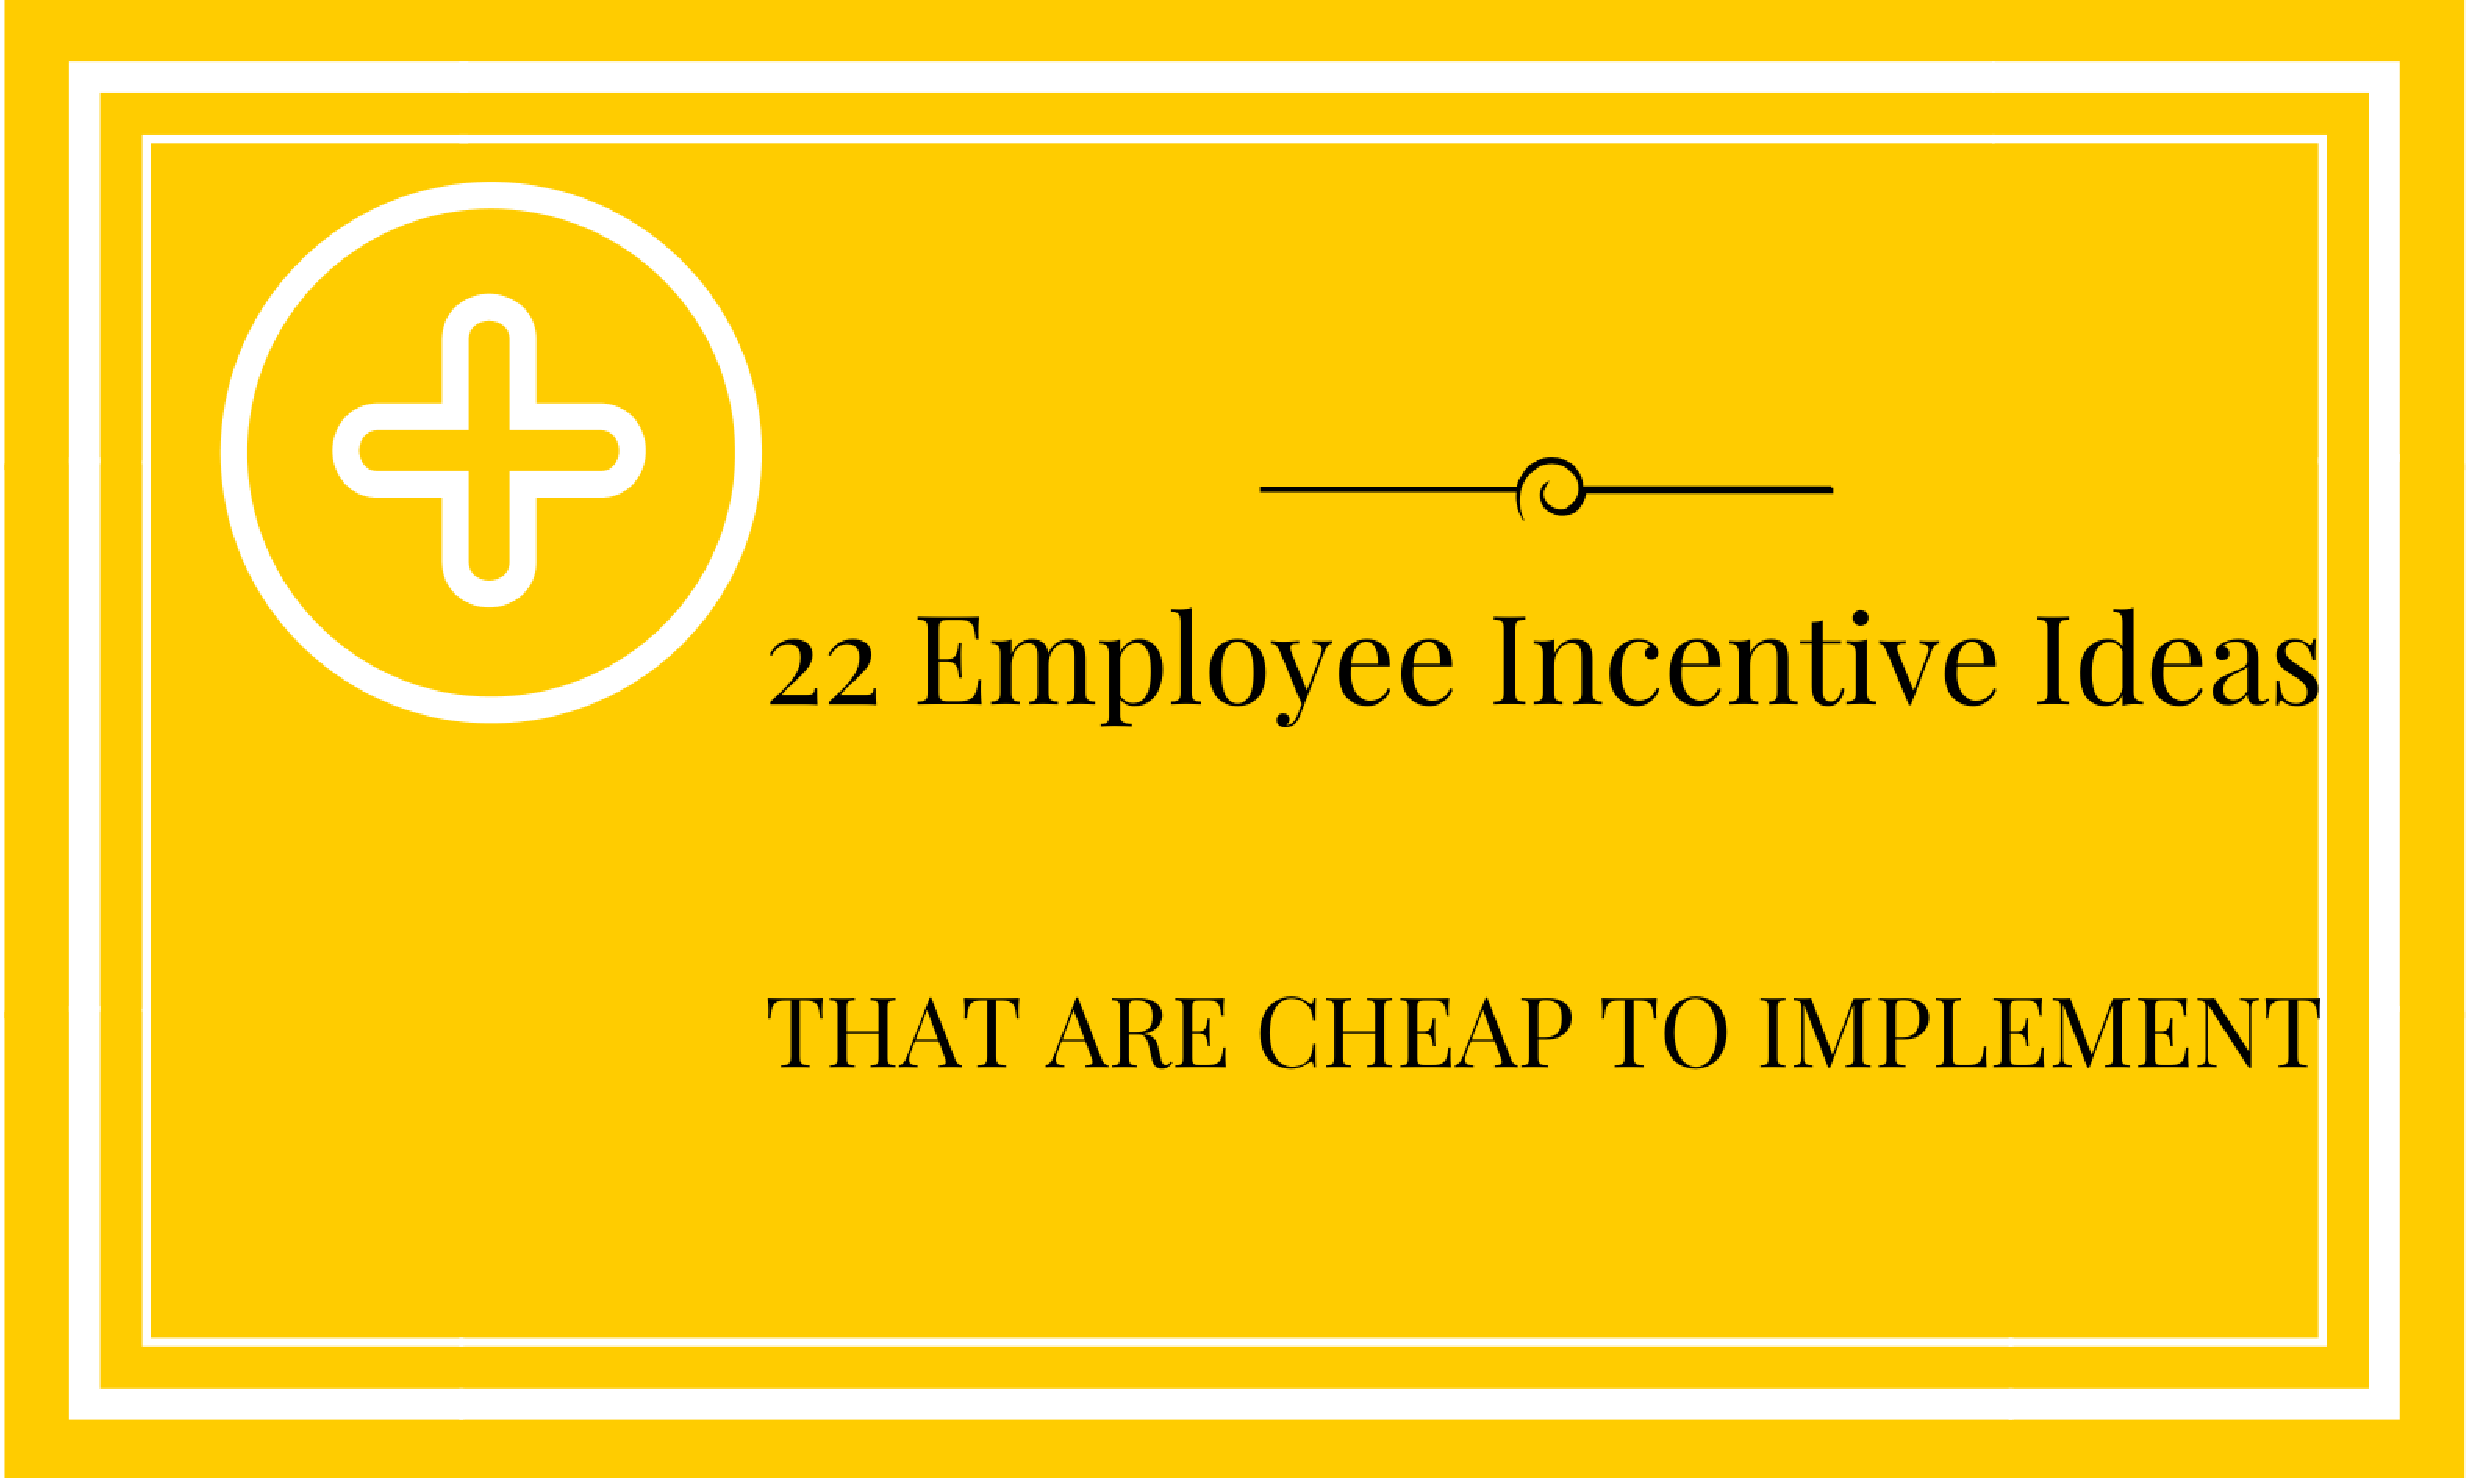 22 employee incentive ideas that are cheap to implement | expiration